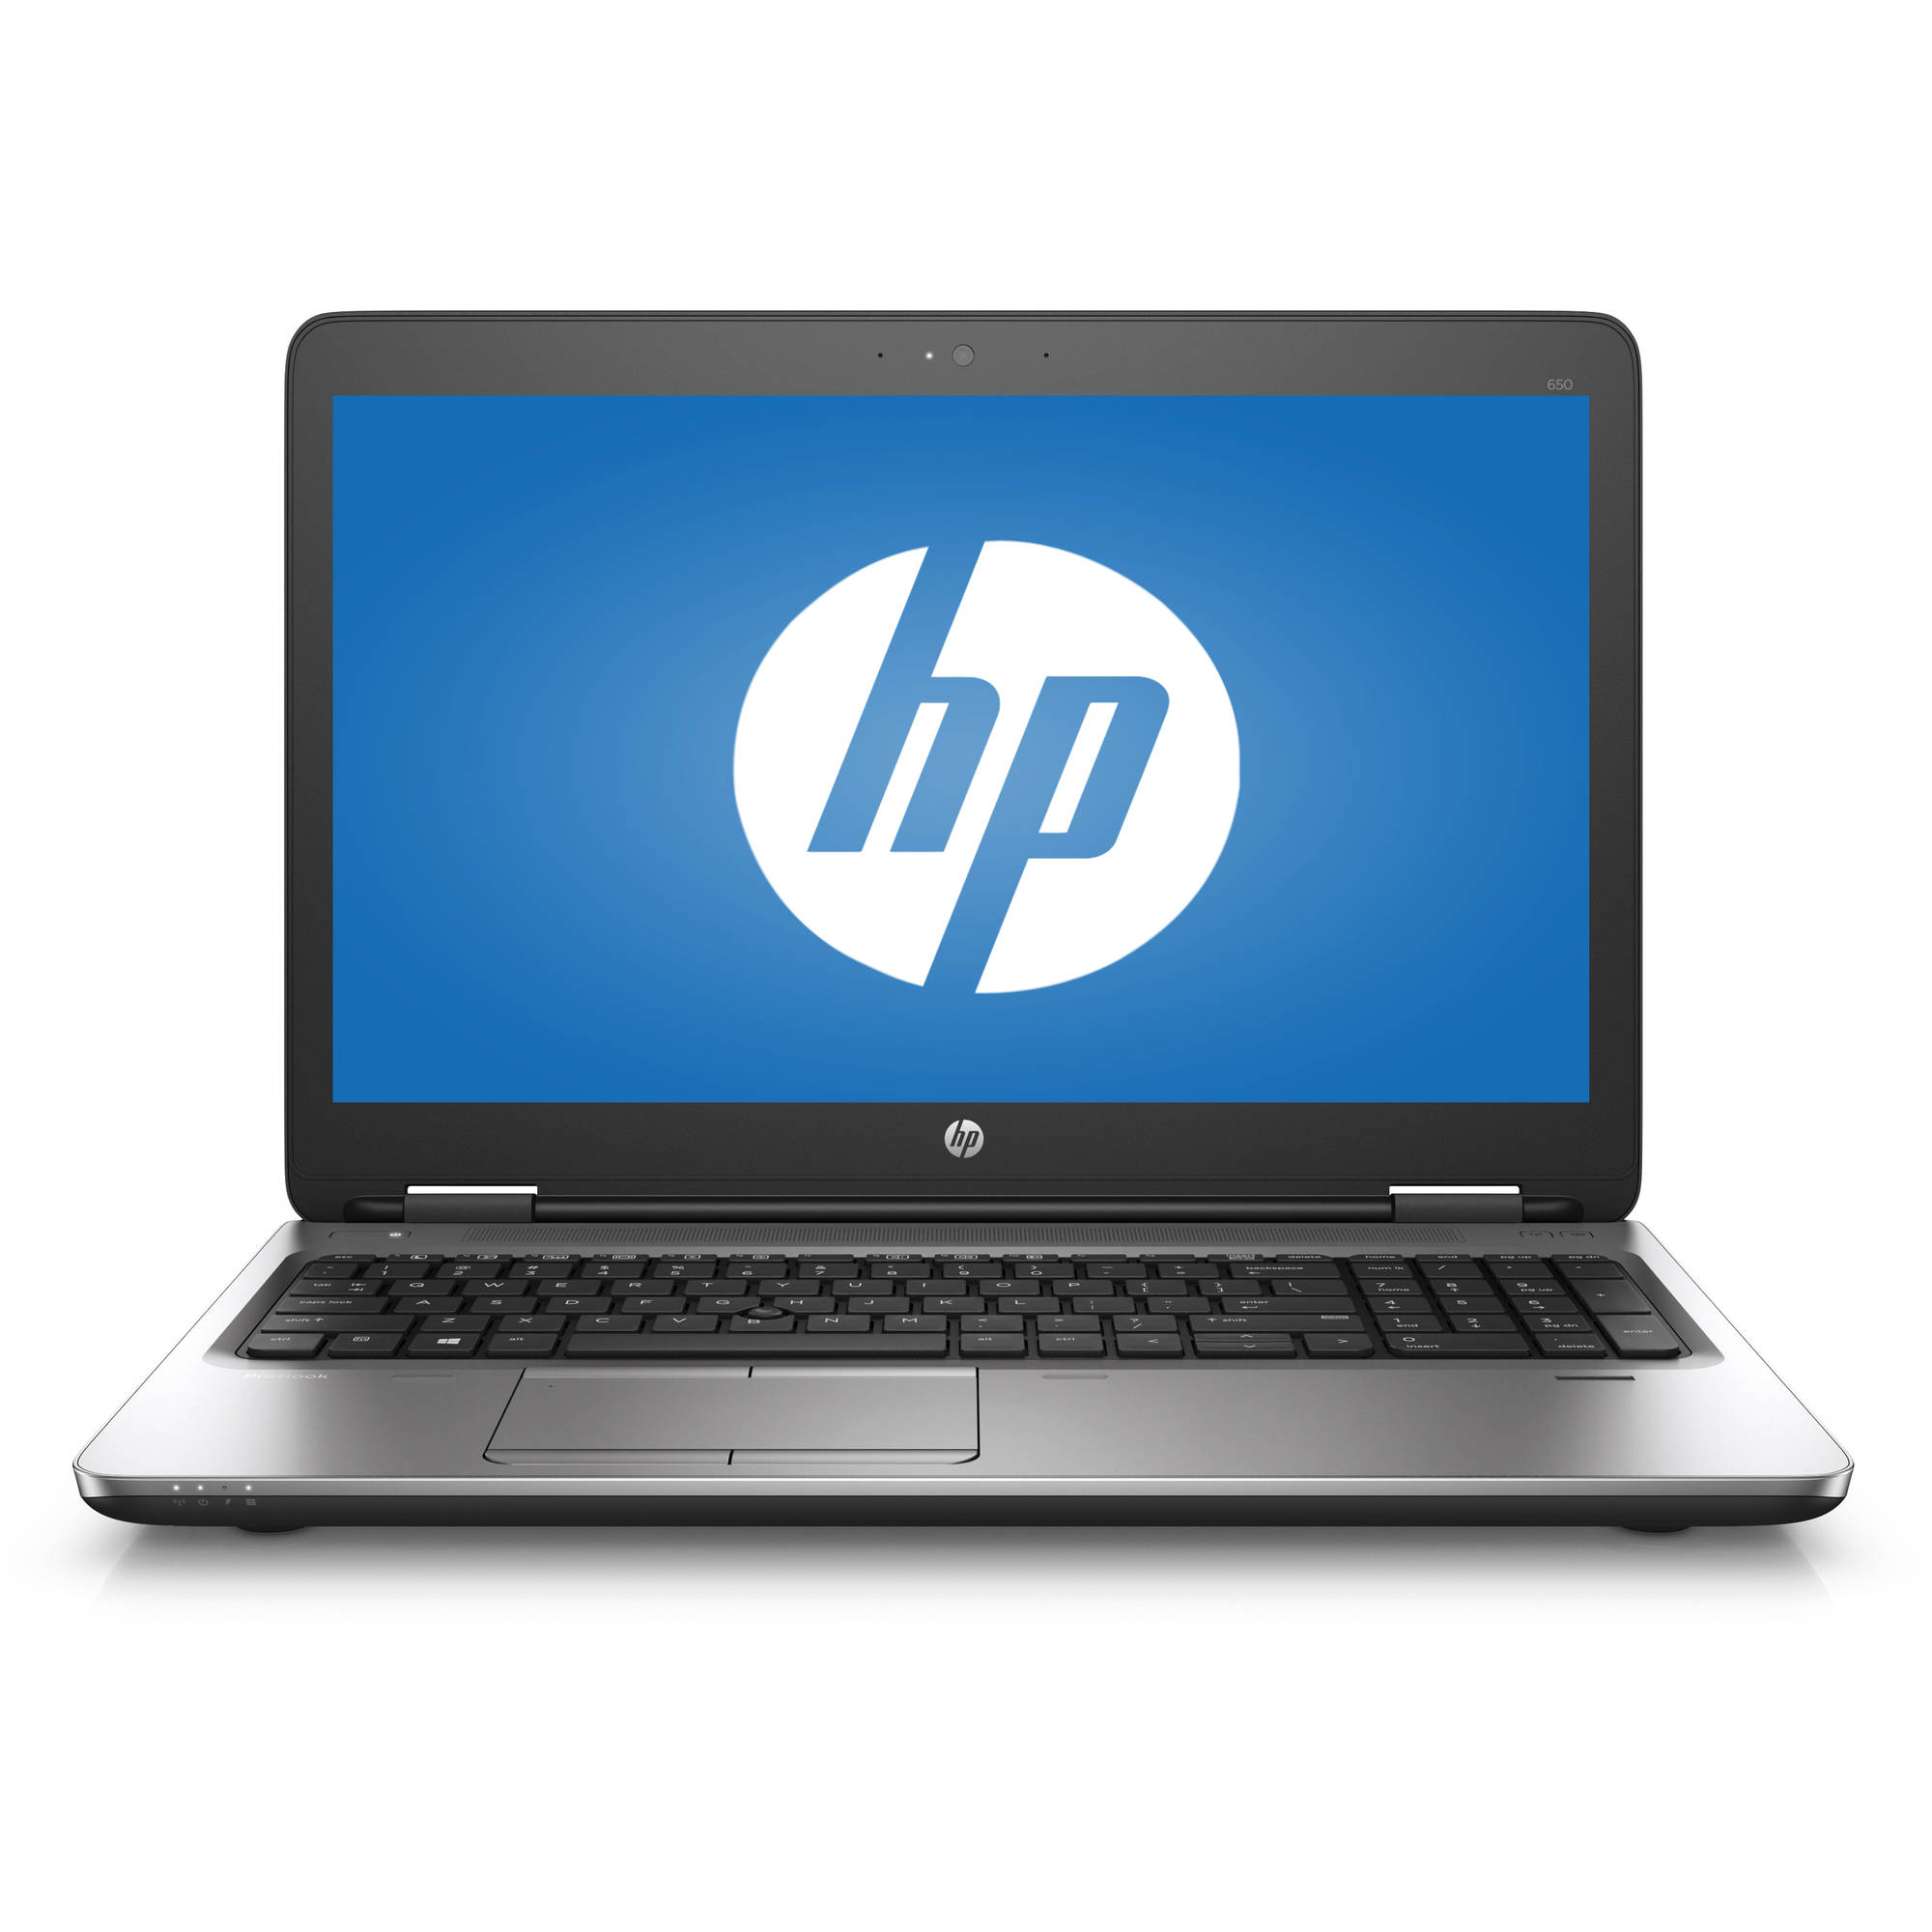 "HP ProBook 650 G2 15.6"" Laptop, Windows 7 Professional, Intel Core i5-6200U Processor, 8GB RAM, 256GB Solid State Drive"